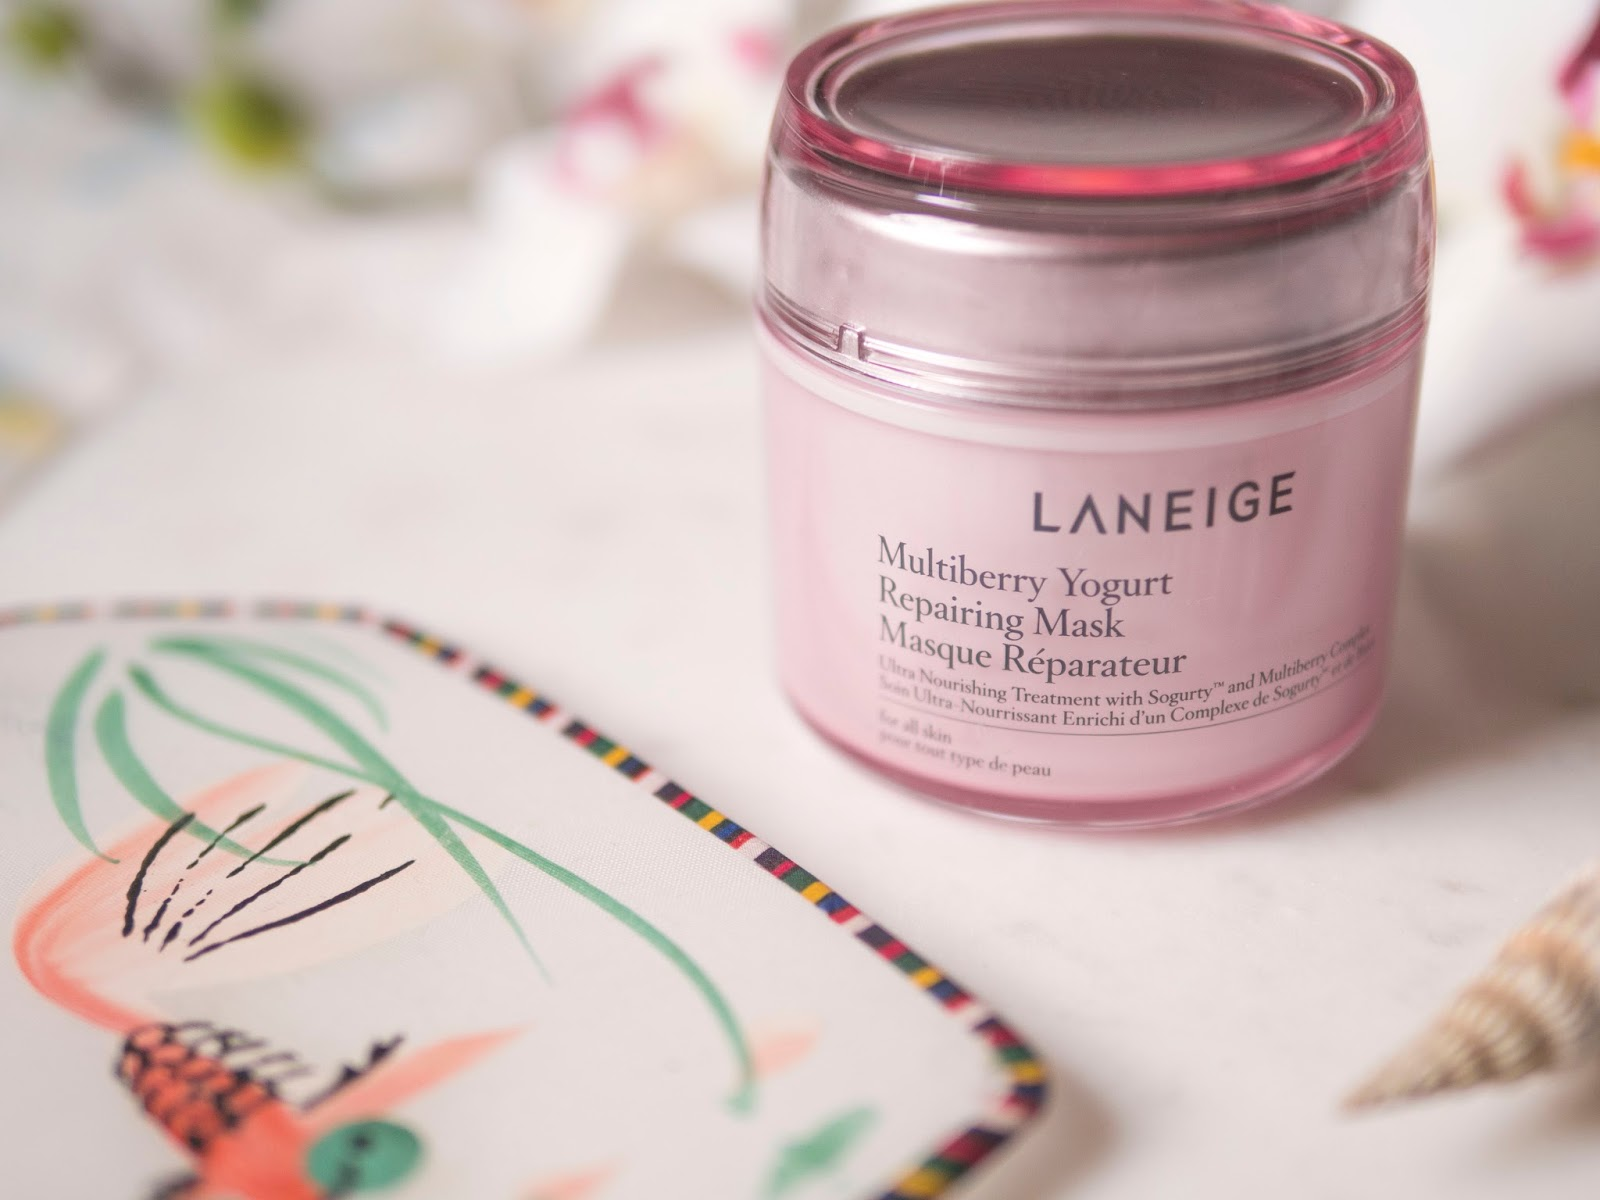 Laneige Multiberry Yogurt Repairing Mask is the Perfect Mask for Self Care Sunday